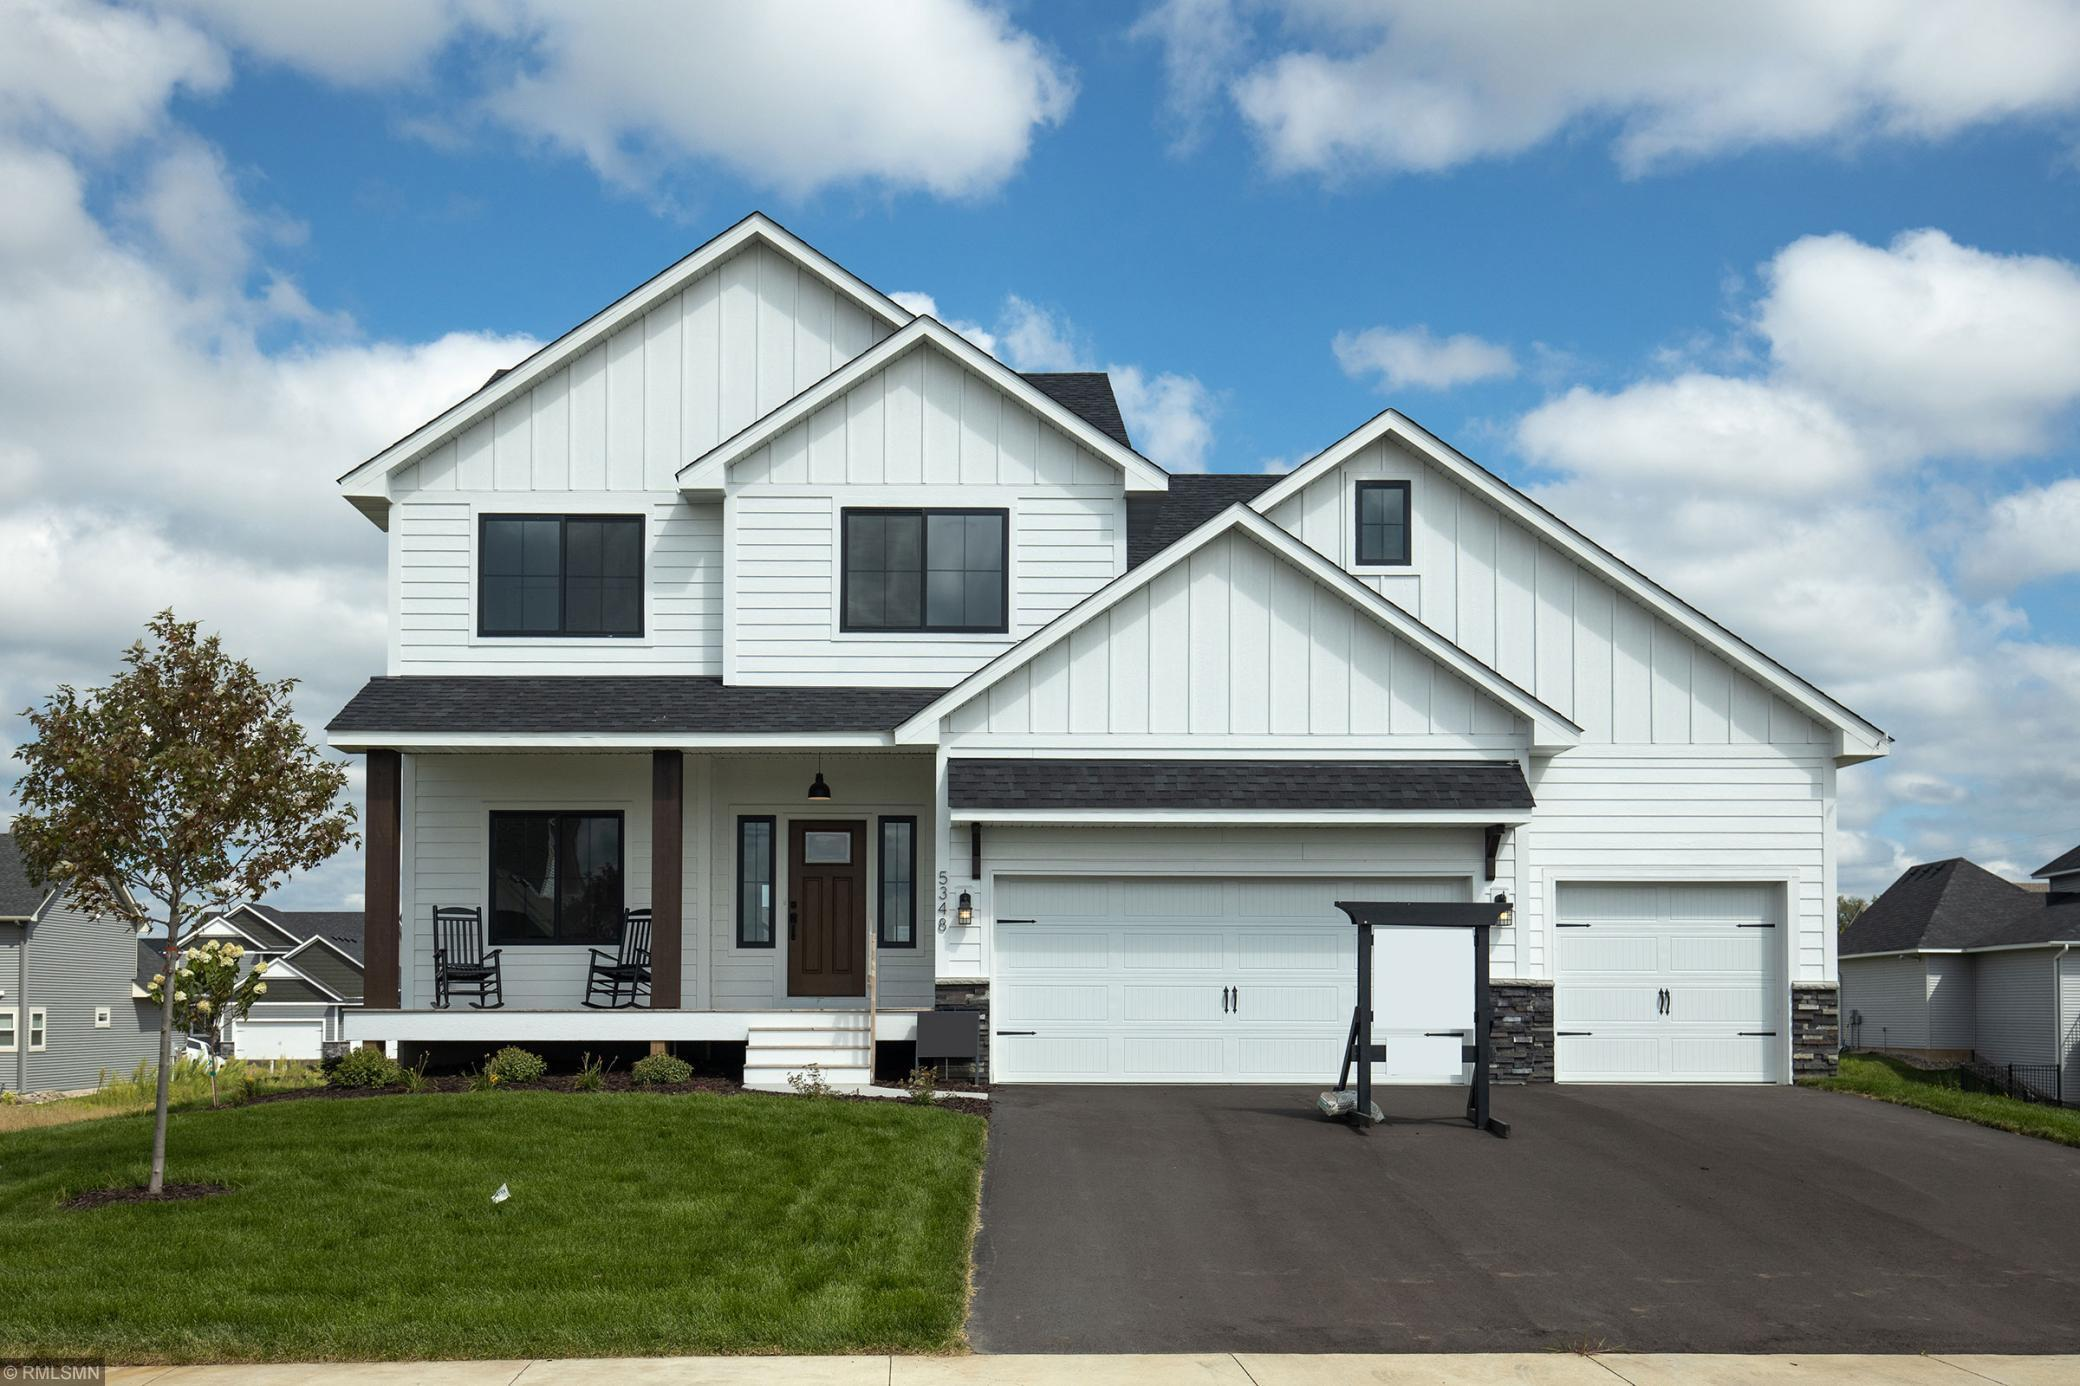 20181 Harvest Drive W Property Photo - Lakeville, MN real estate listing